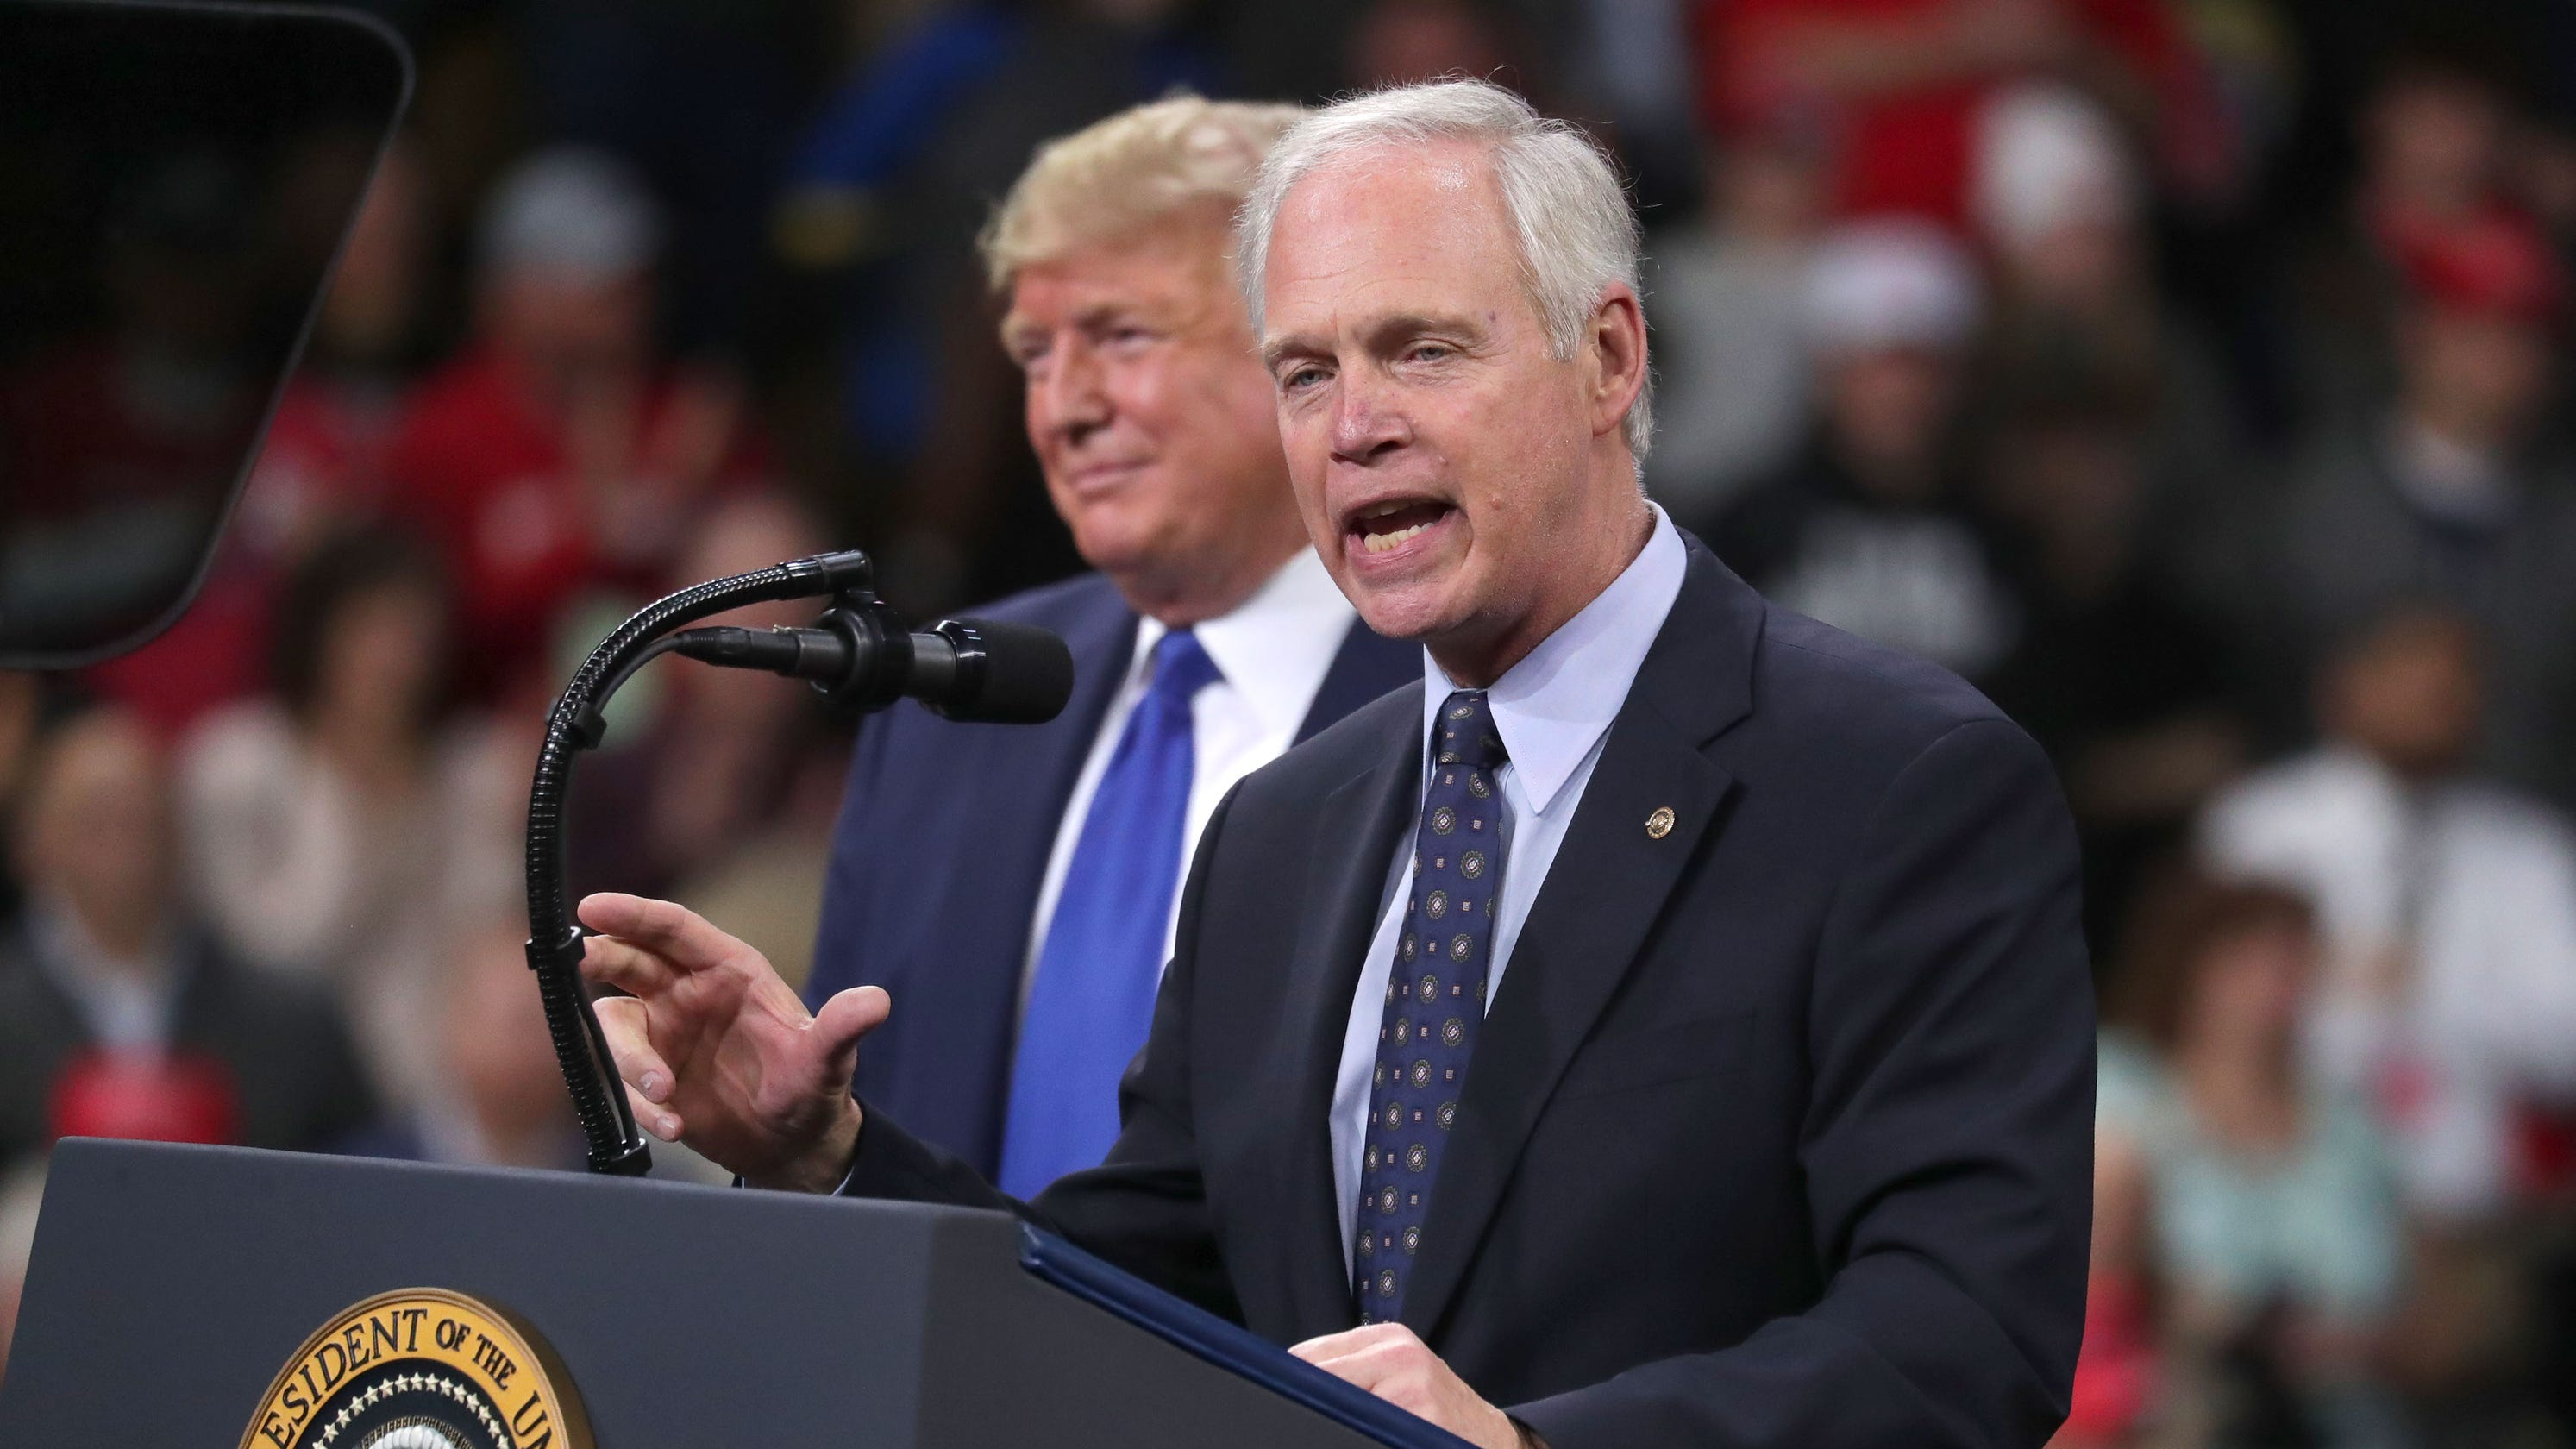 Ron Johnson tried to save job of impeachment witness Gordon Sondland